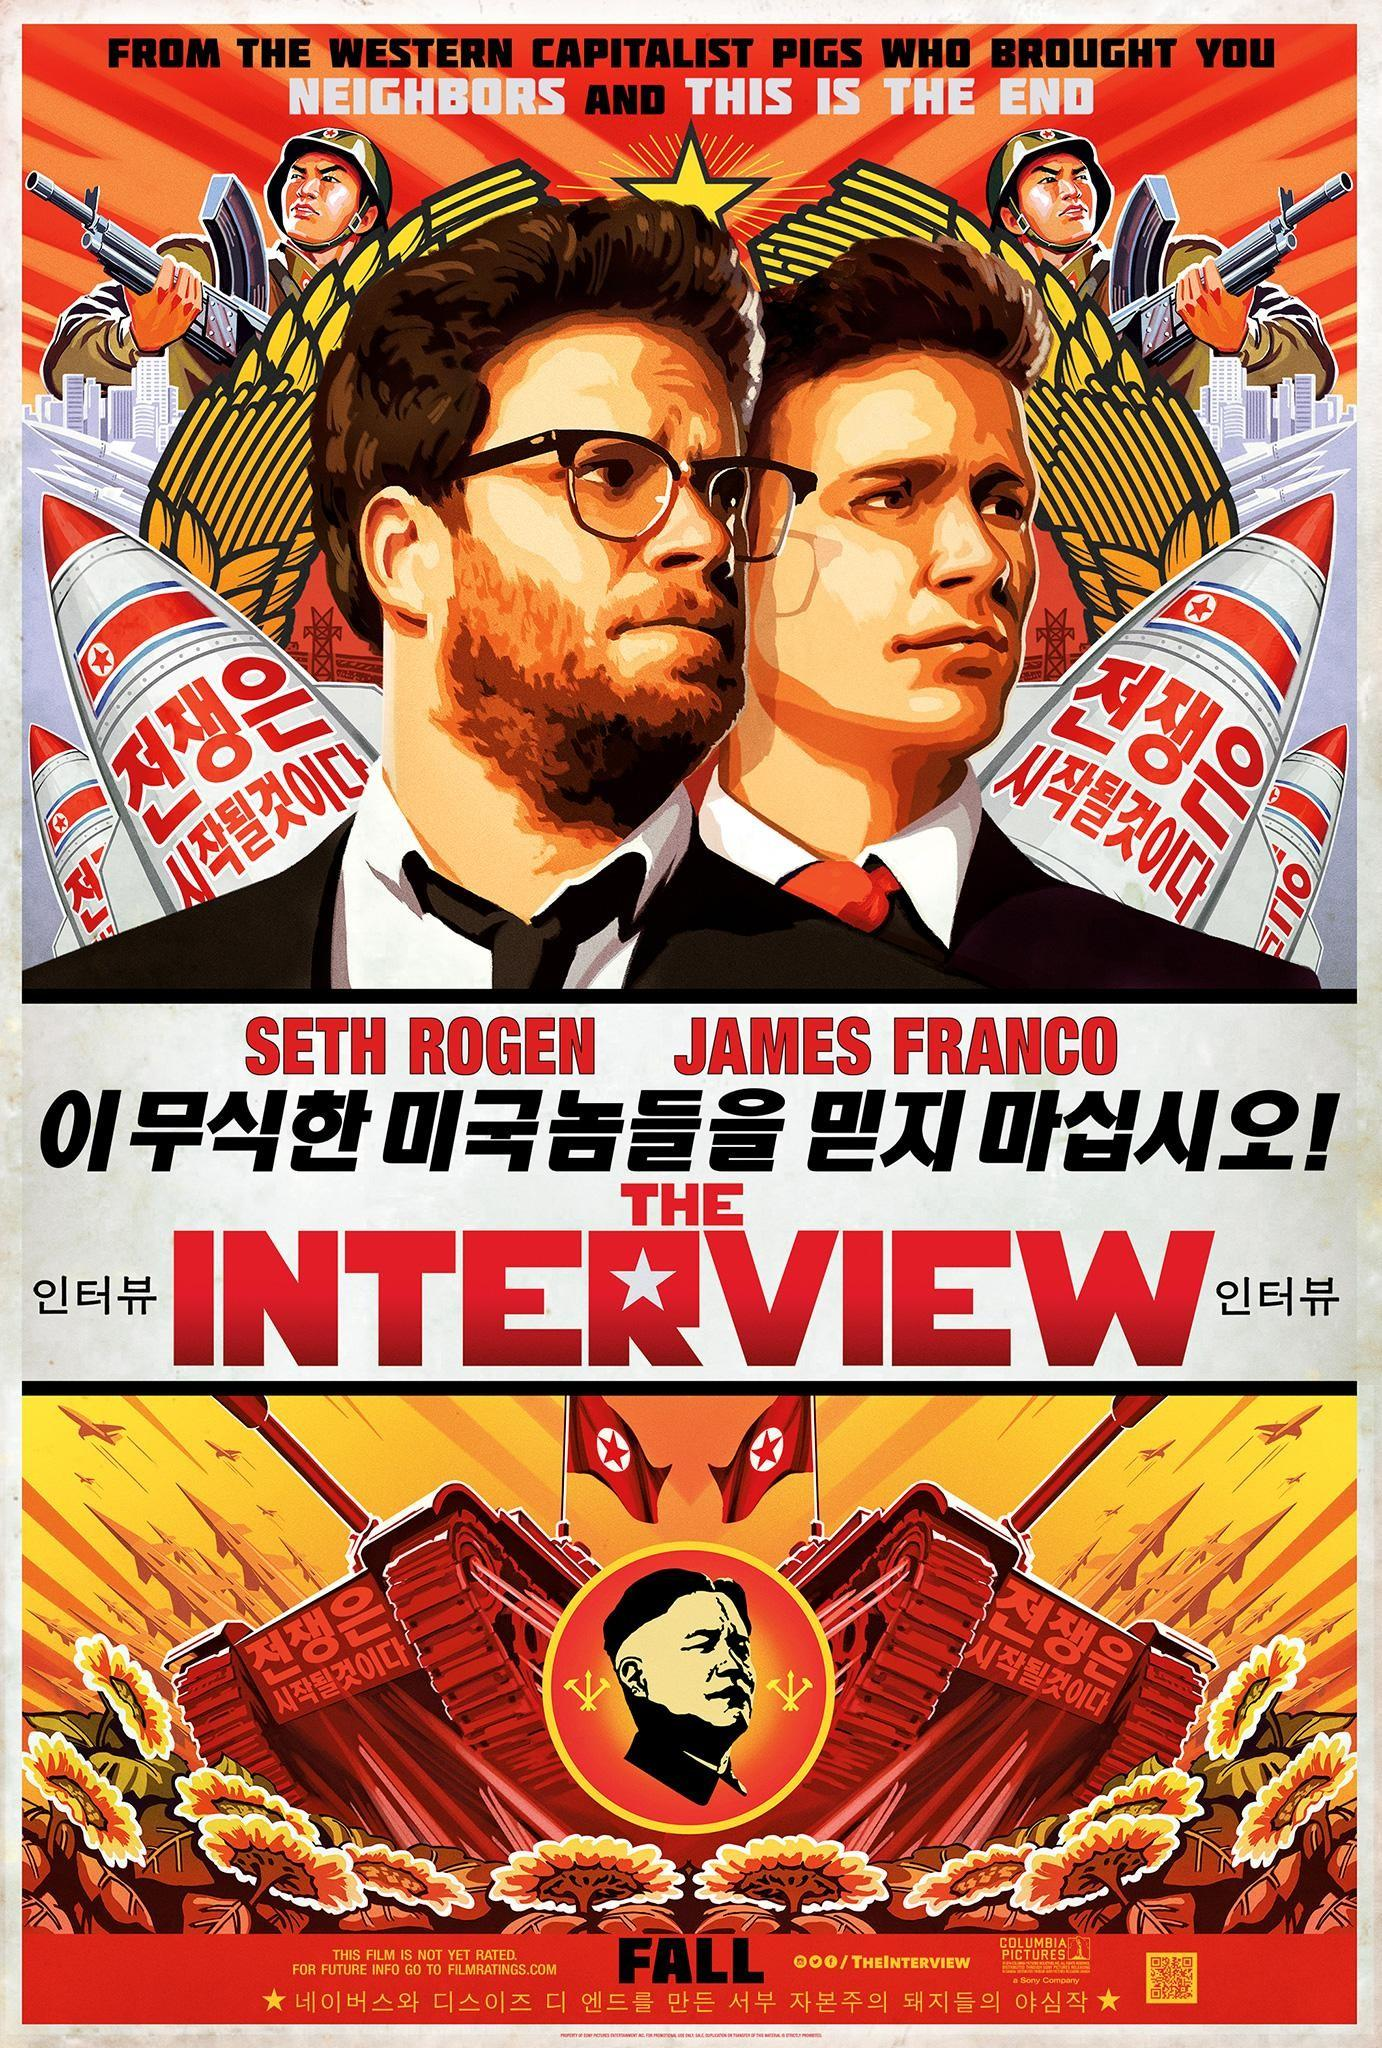 Seth Rogen and James Franco star in The Interview